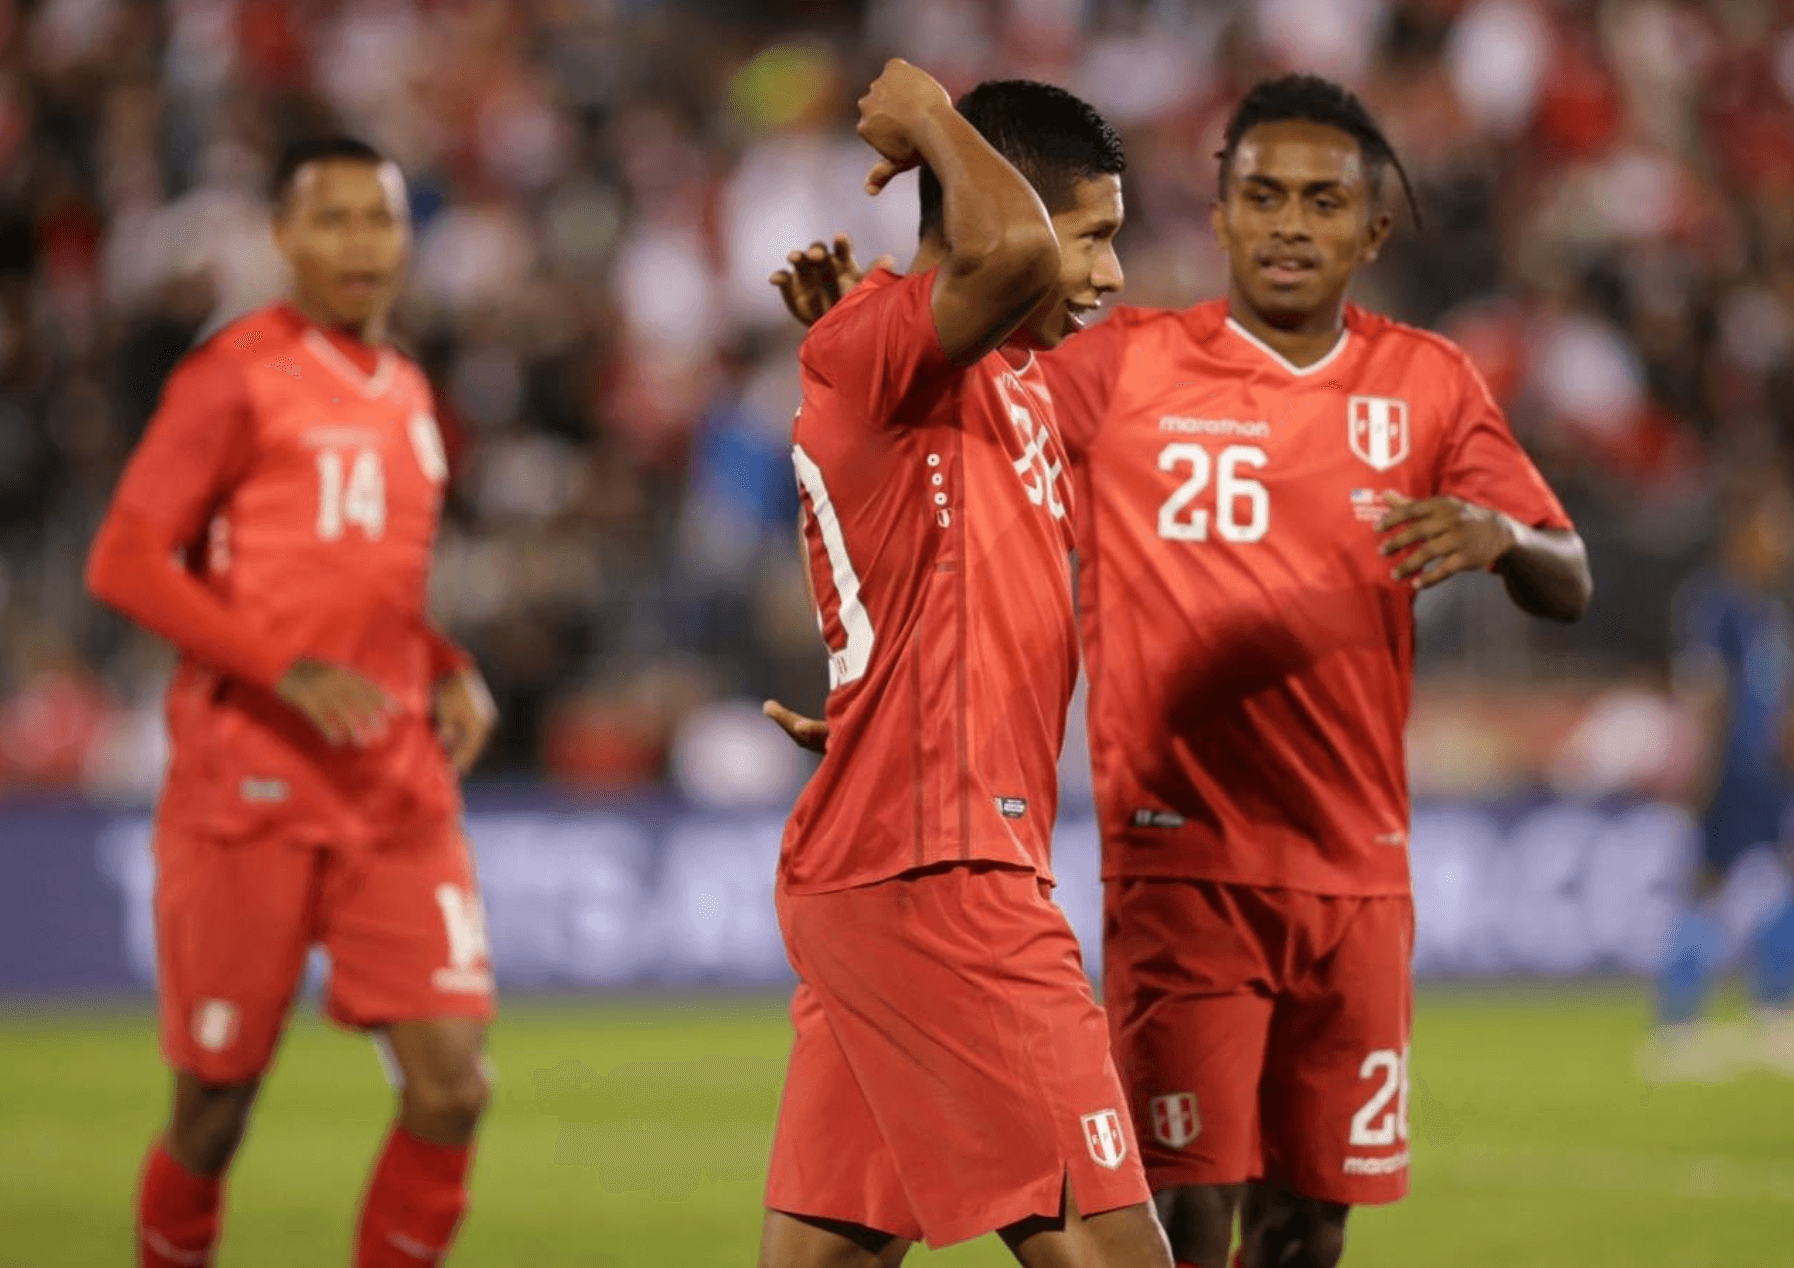 Peru draws with United States in latest friendly